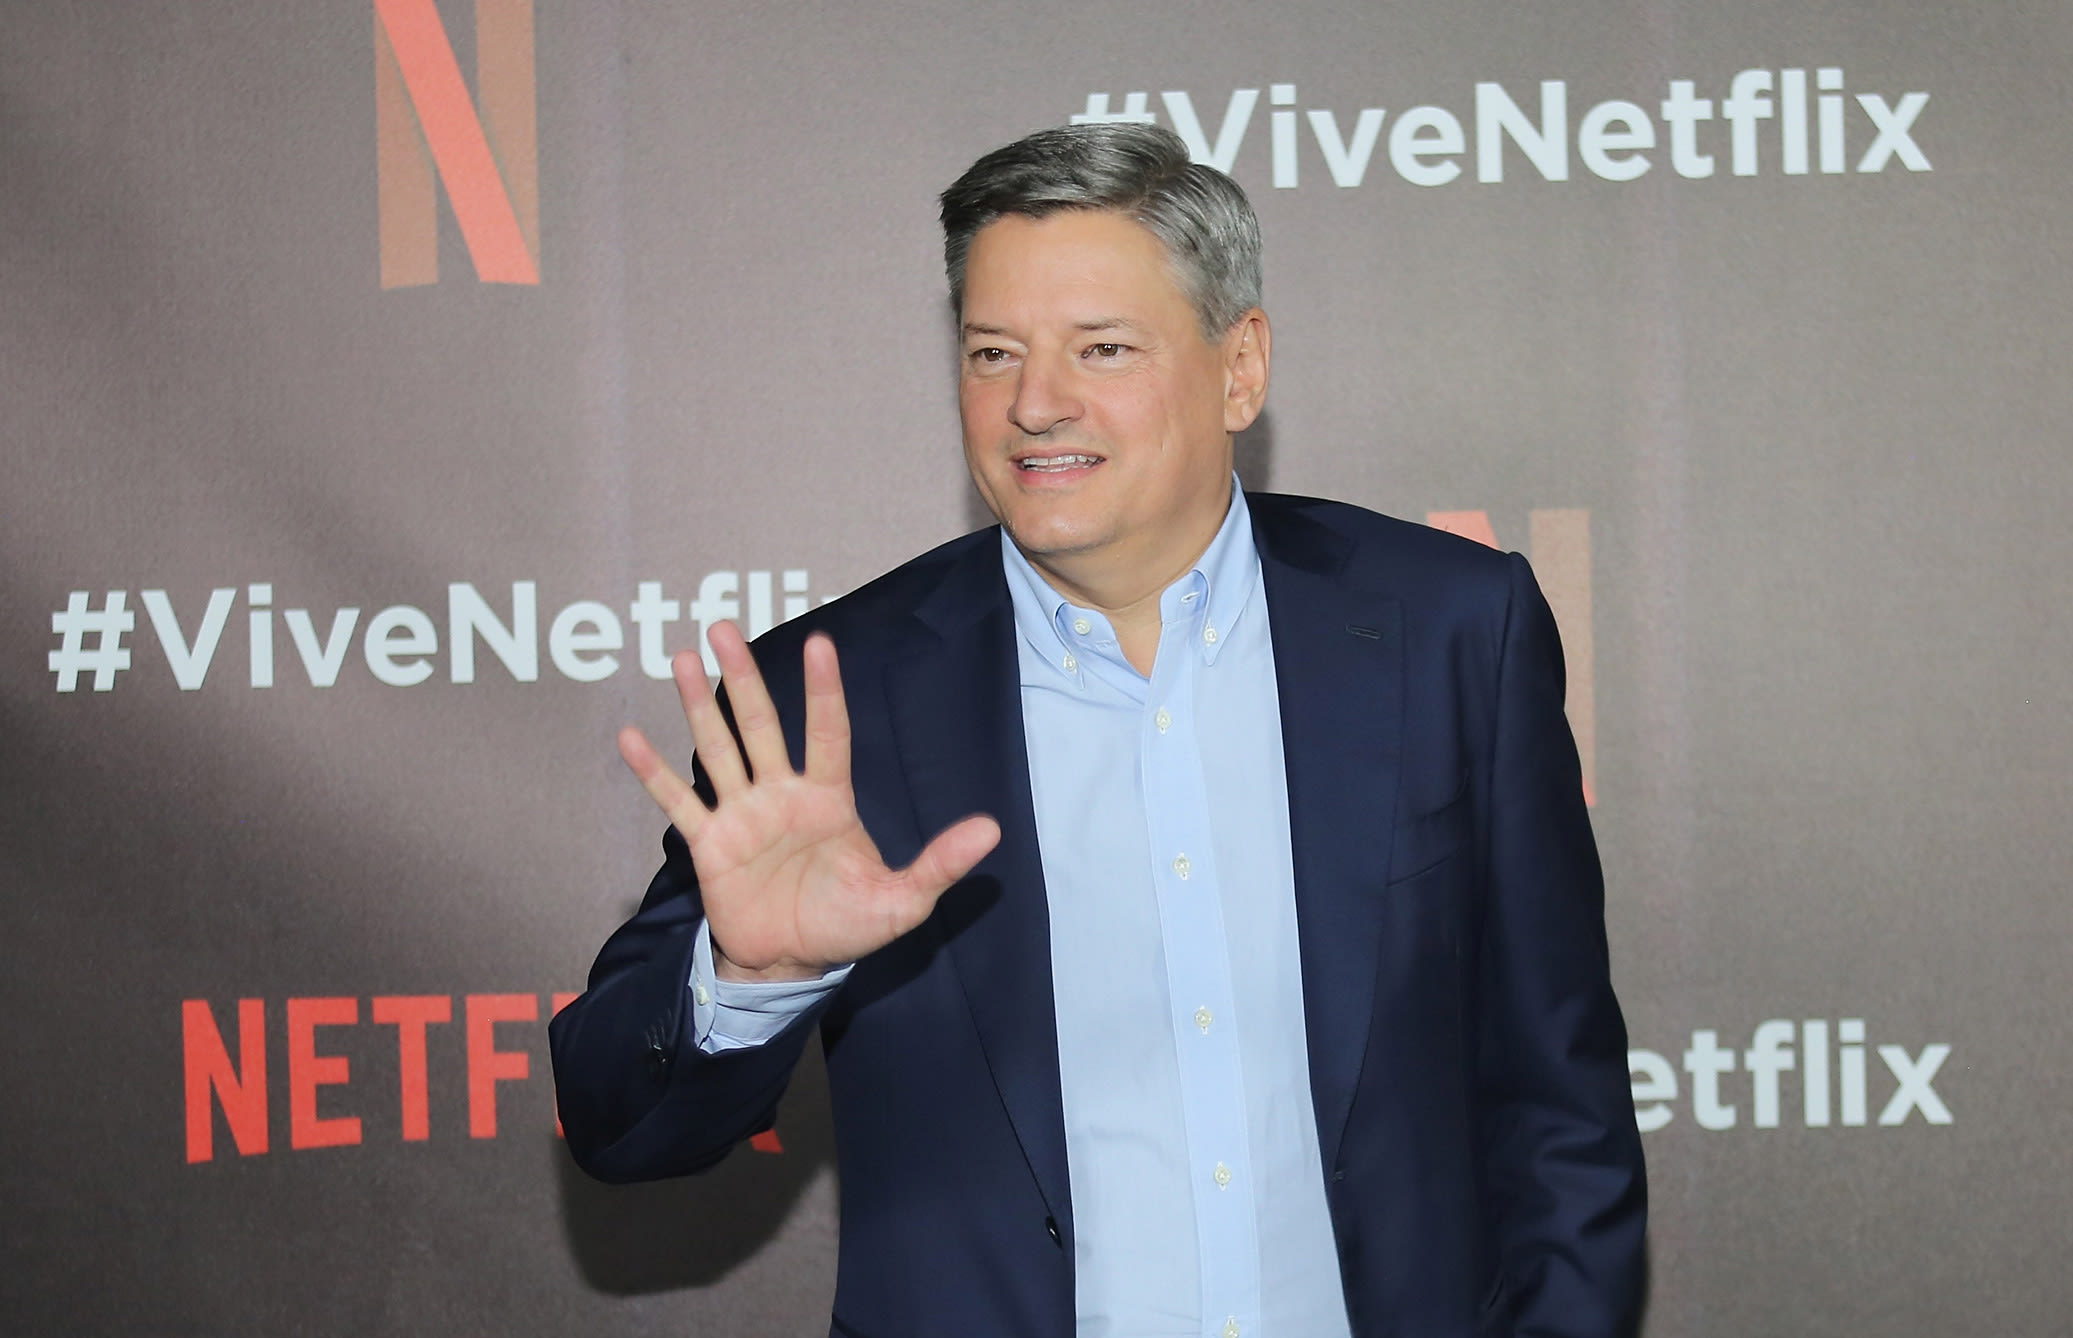 Netflix's latest results and executive comments show it's just another media company — not a pay-TV killer